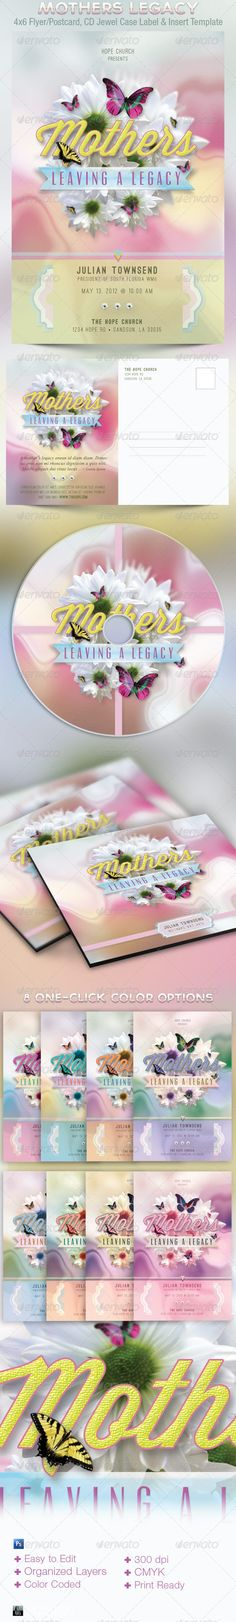 Video Loops DVD Artwork Template u2014 Photoshop PSD #loops #clean - abel templates psd